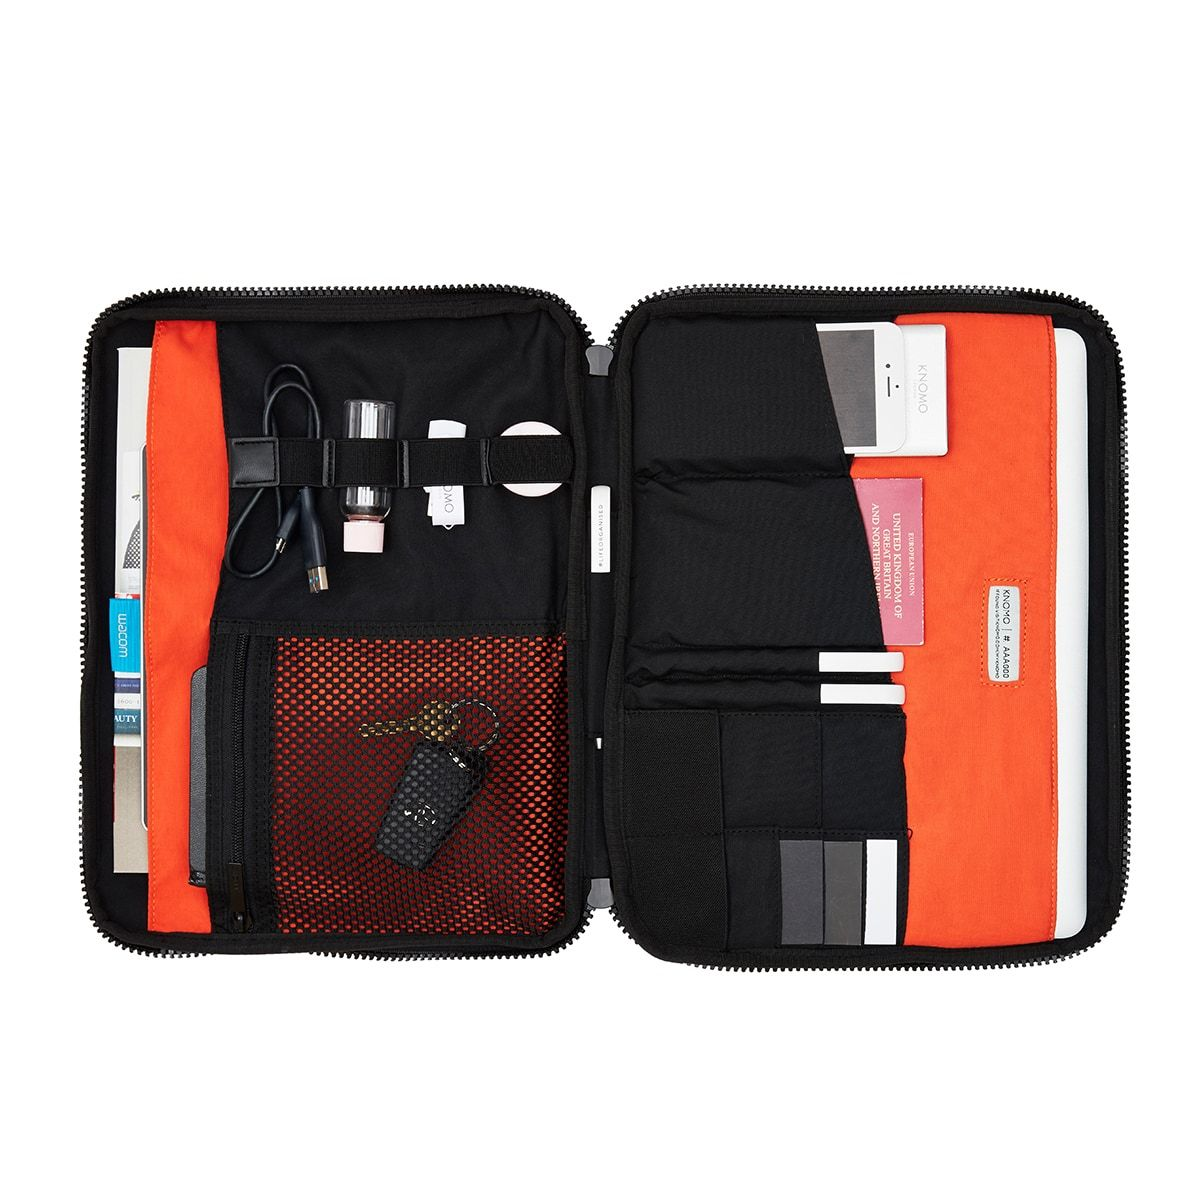 "KNOMO Thames Knomad Organiser Tech Organiser Internal With Items 13"" -  Black 